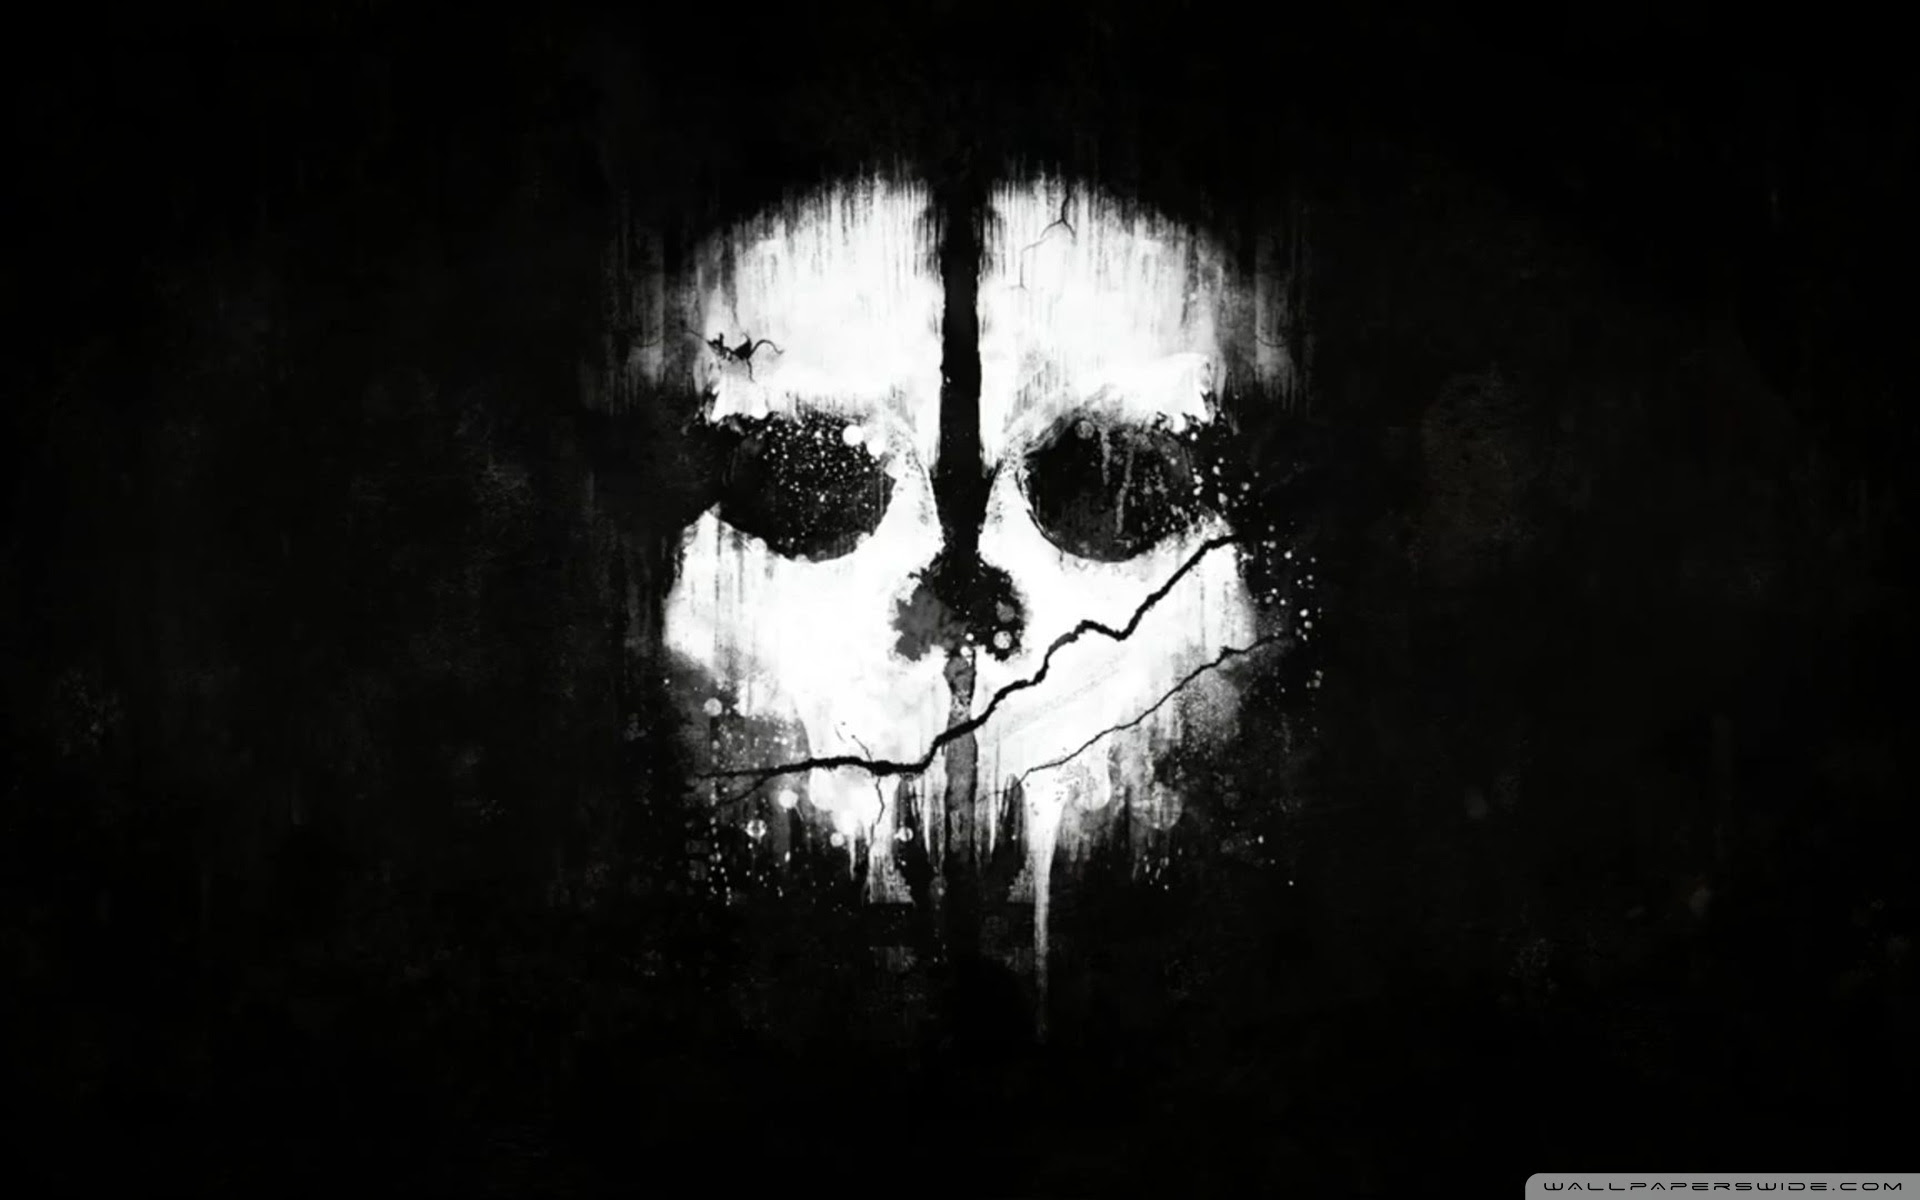 cod ghosts hd wide wallpaper for 4k uhd widescreen desktop smartphone